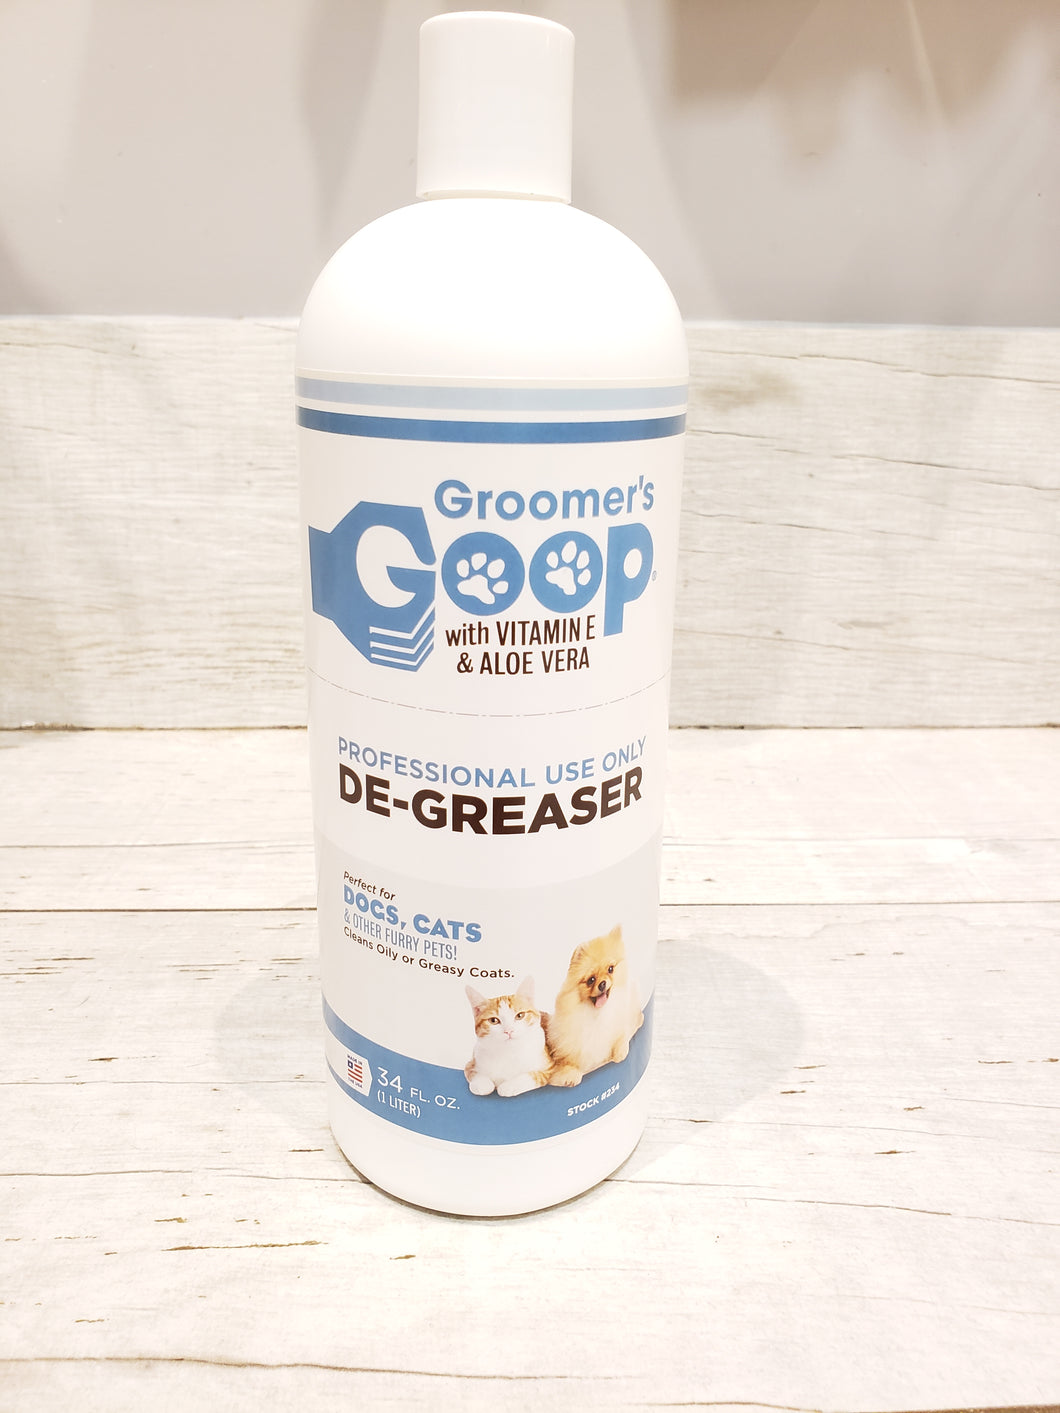 Groomer's Goop - 34 oz Bottle - Chubbs Bars,  - pet shampoo, Groomer's Goop - Chubbs Bars Company, Woofur Natural Pet Products - Chubbs Bars Canada